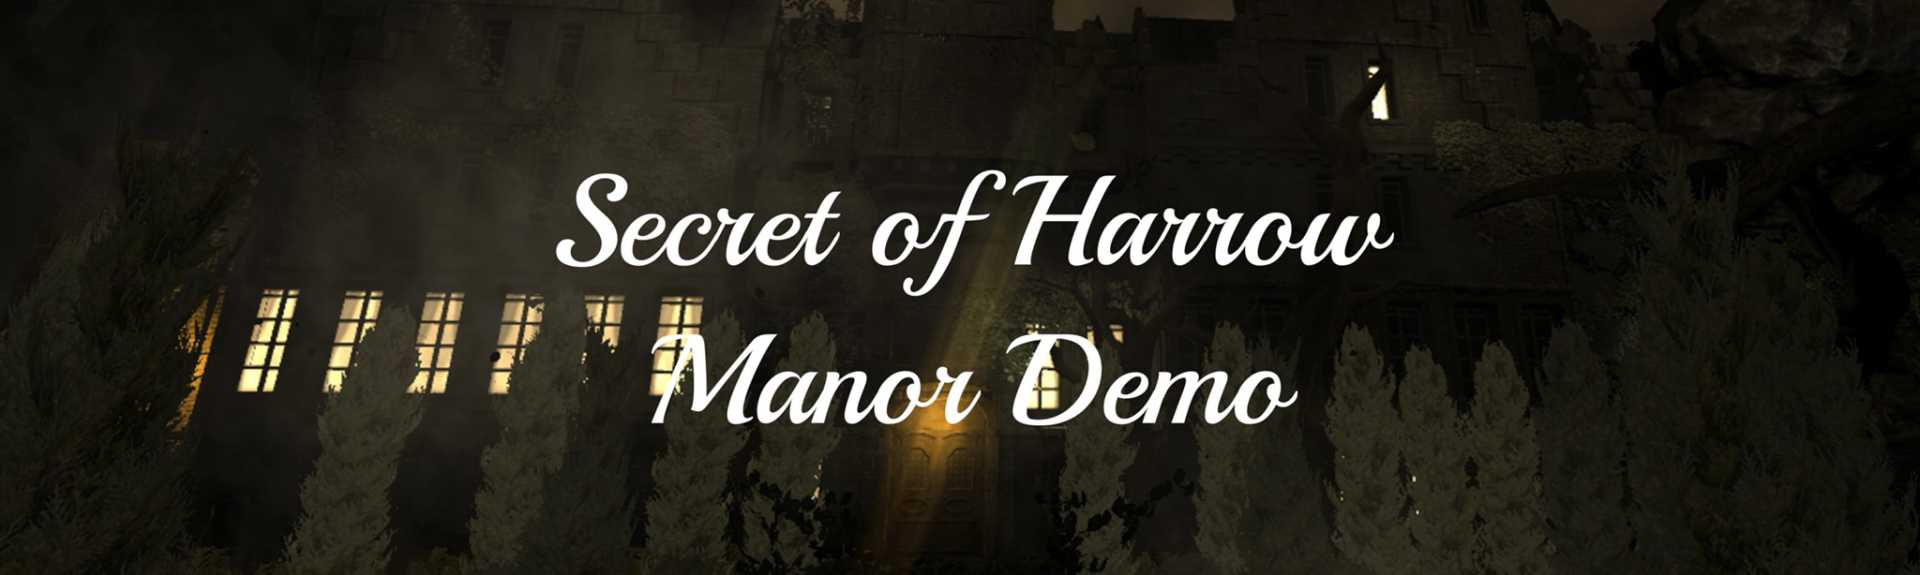 Secret of Harrow Manor Demo